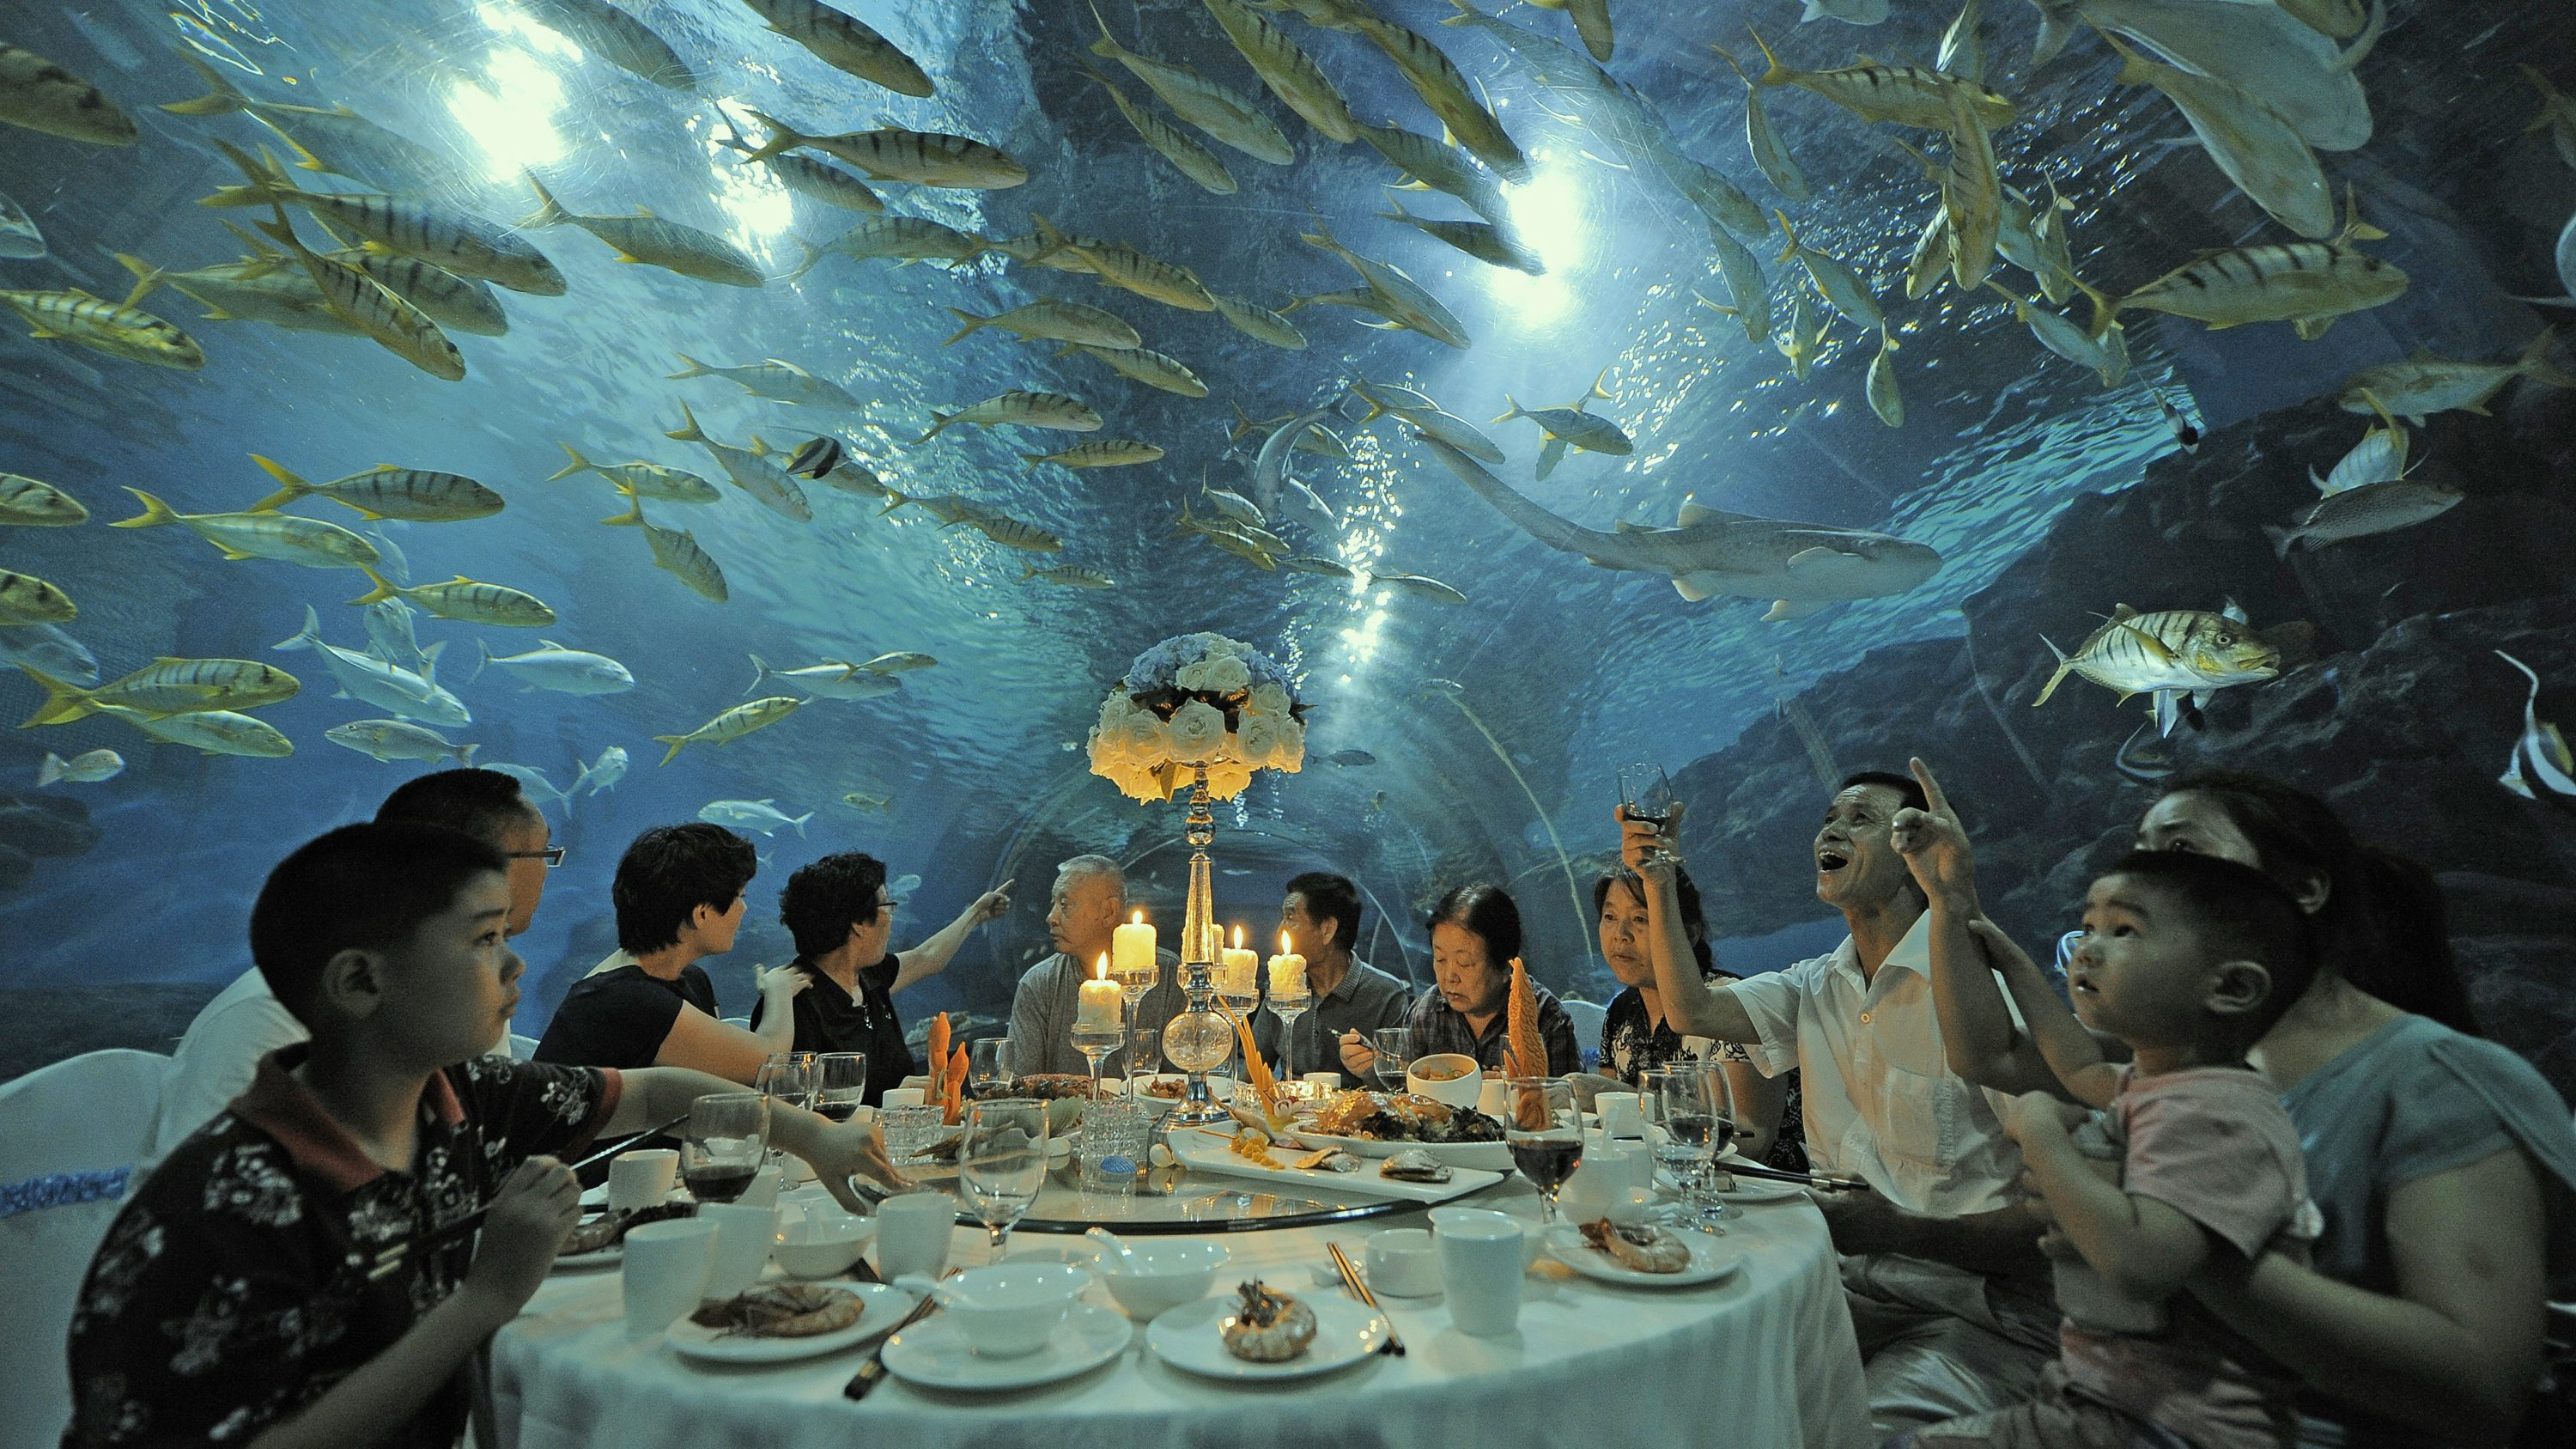 Tourists have dinner as fish swim around them, at the Tianjin Haichang Polar Ocean World in Tianjin, September 1, 2014. Picture taken September 1, 2014.